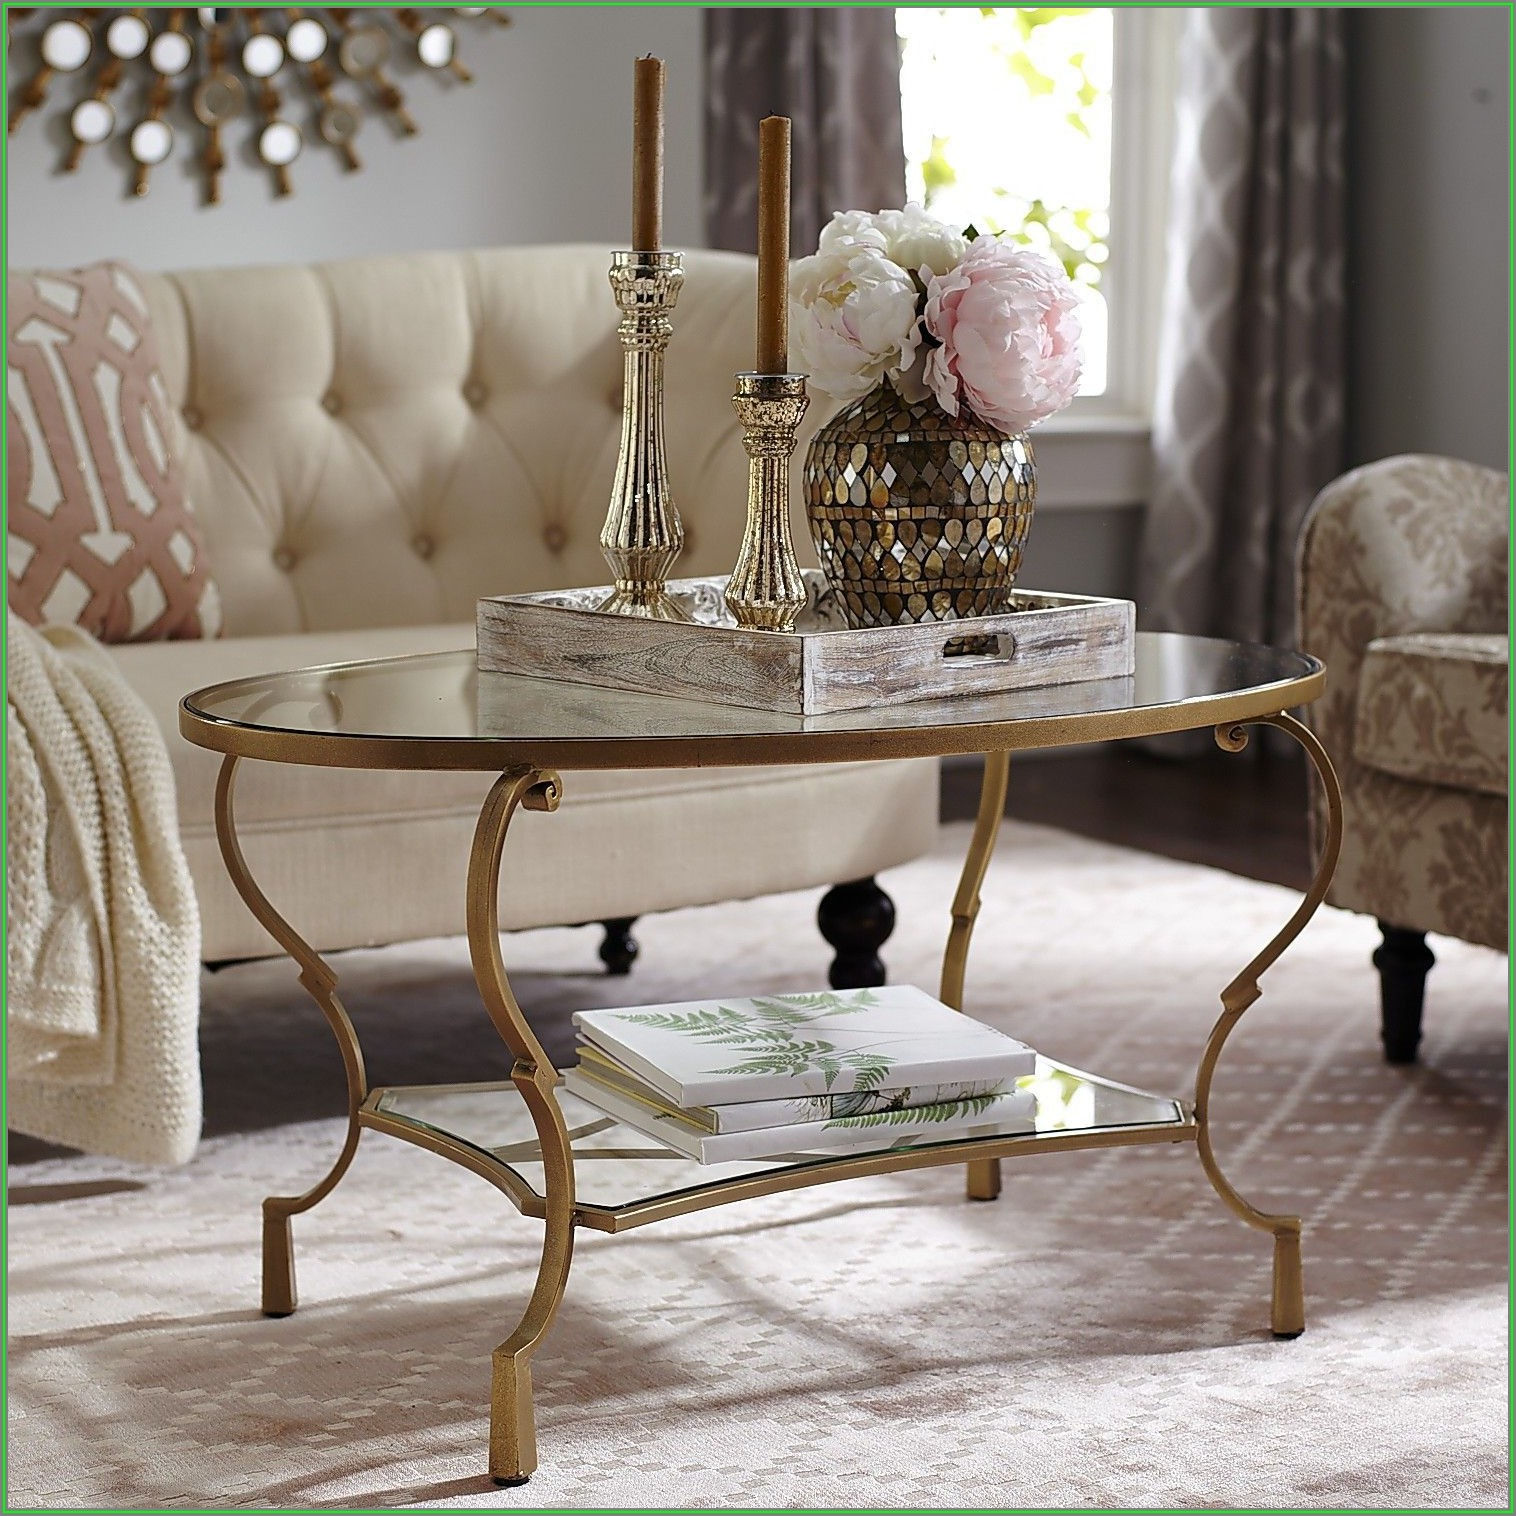 Oval Glass Coffee Table Decor